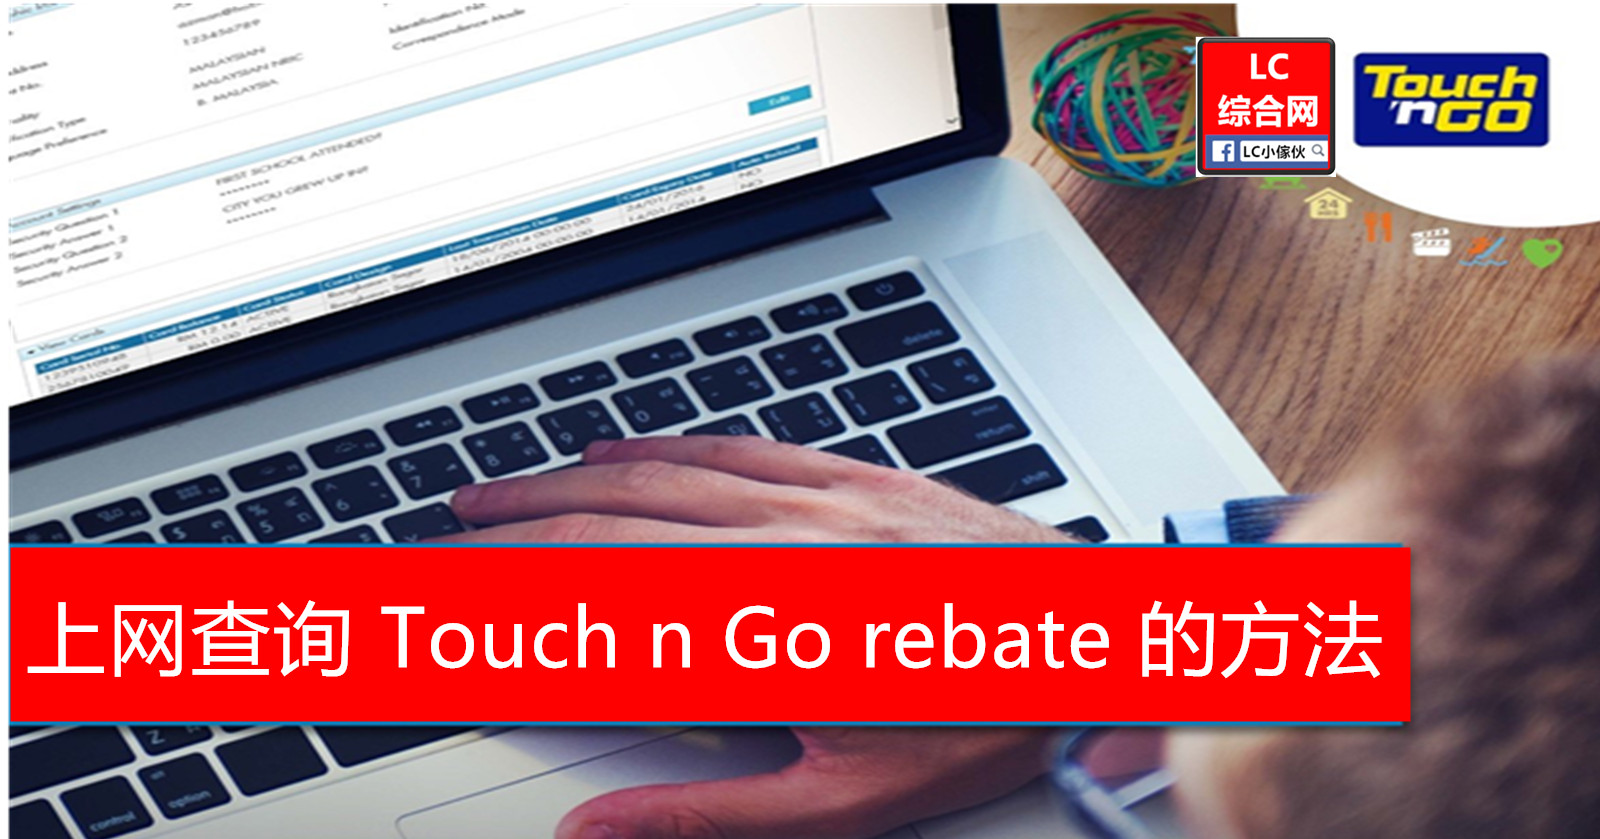 touchn go Touch 'n go is a prepaid smartcard that uses contactless technology the card can be used as a mode of payment for highways, public transports, selected parking, retail and theme parks.